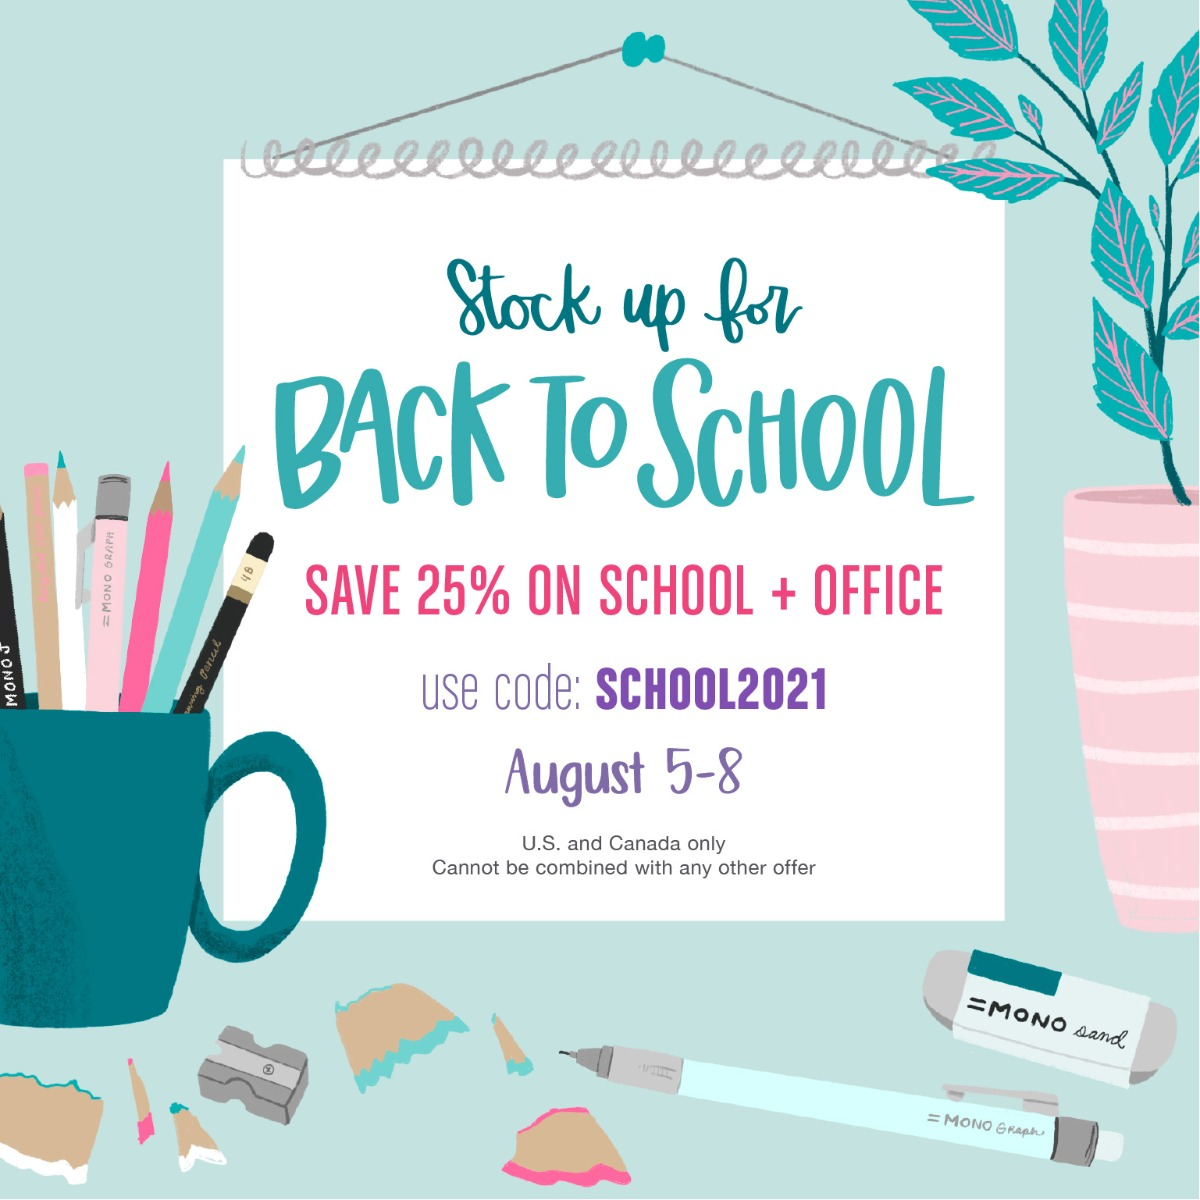 Stock up for back to school! Save 25% on School + Office category with code SCHOOL2021 August 5th through 8th. U.S. Canada Only. Cannot be combined with any other offer.